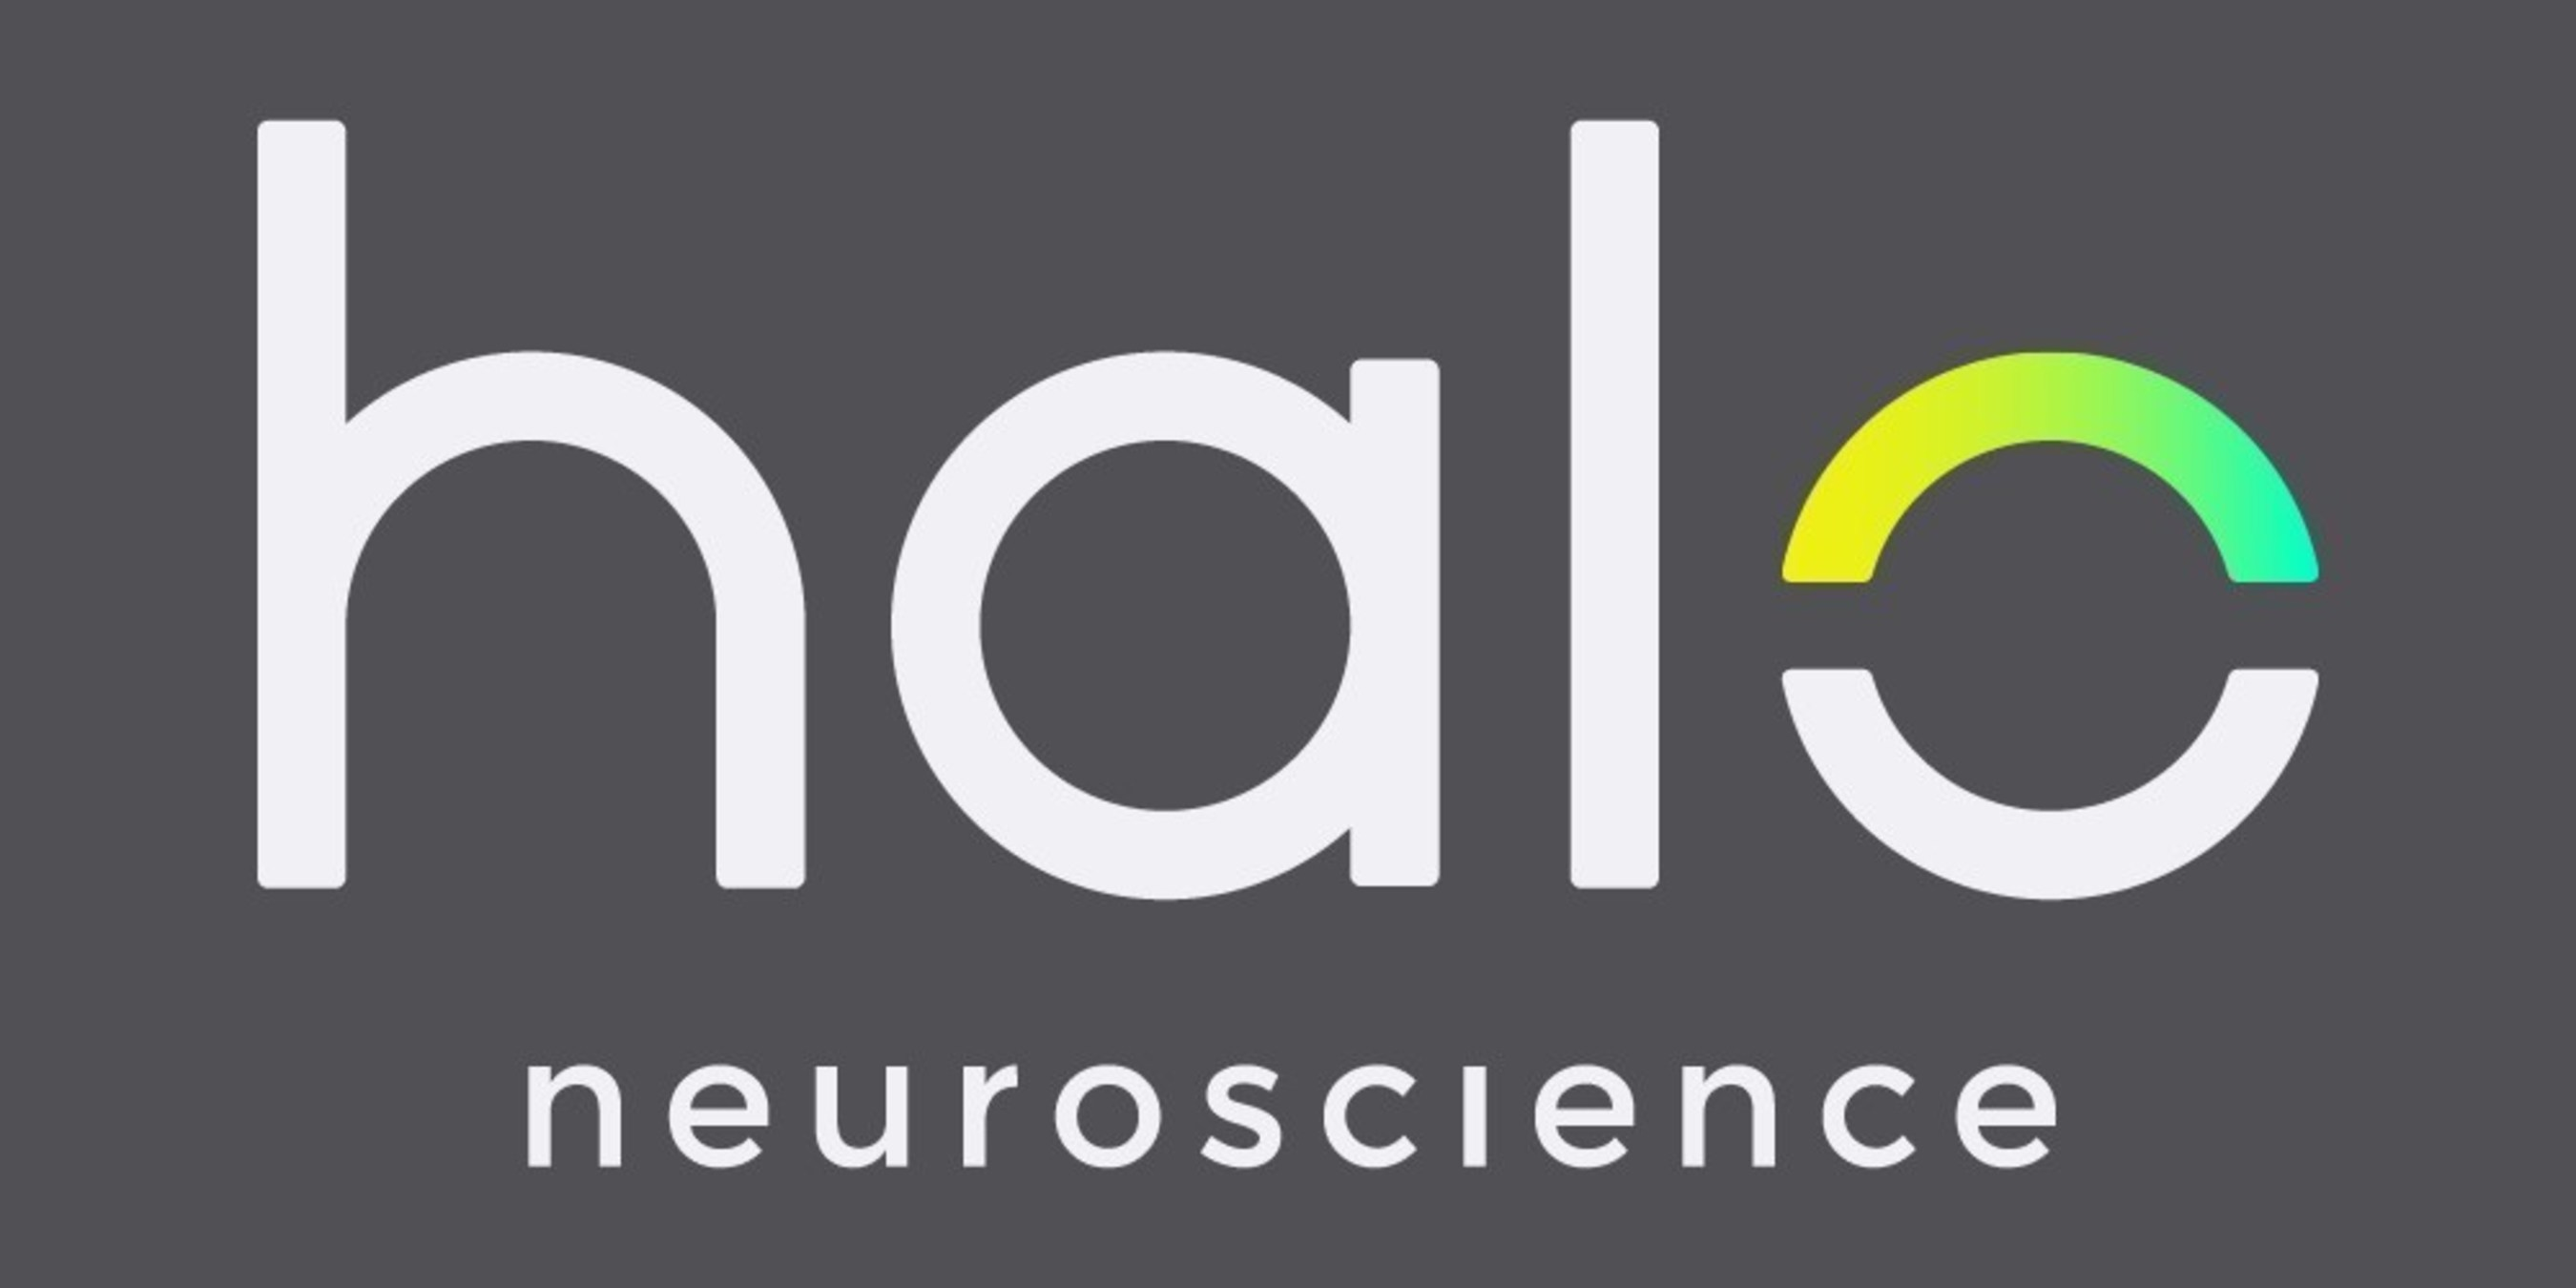 Halo Neuroscience develops neurotechnology to unlock human potential in both the healthy and impaired.